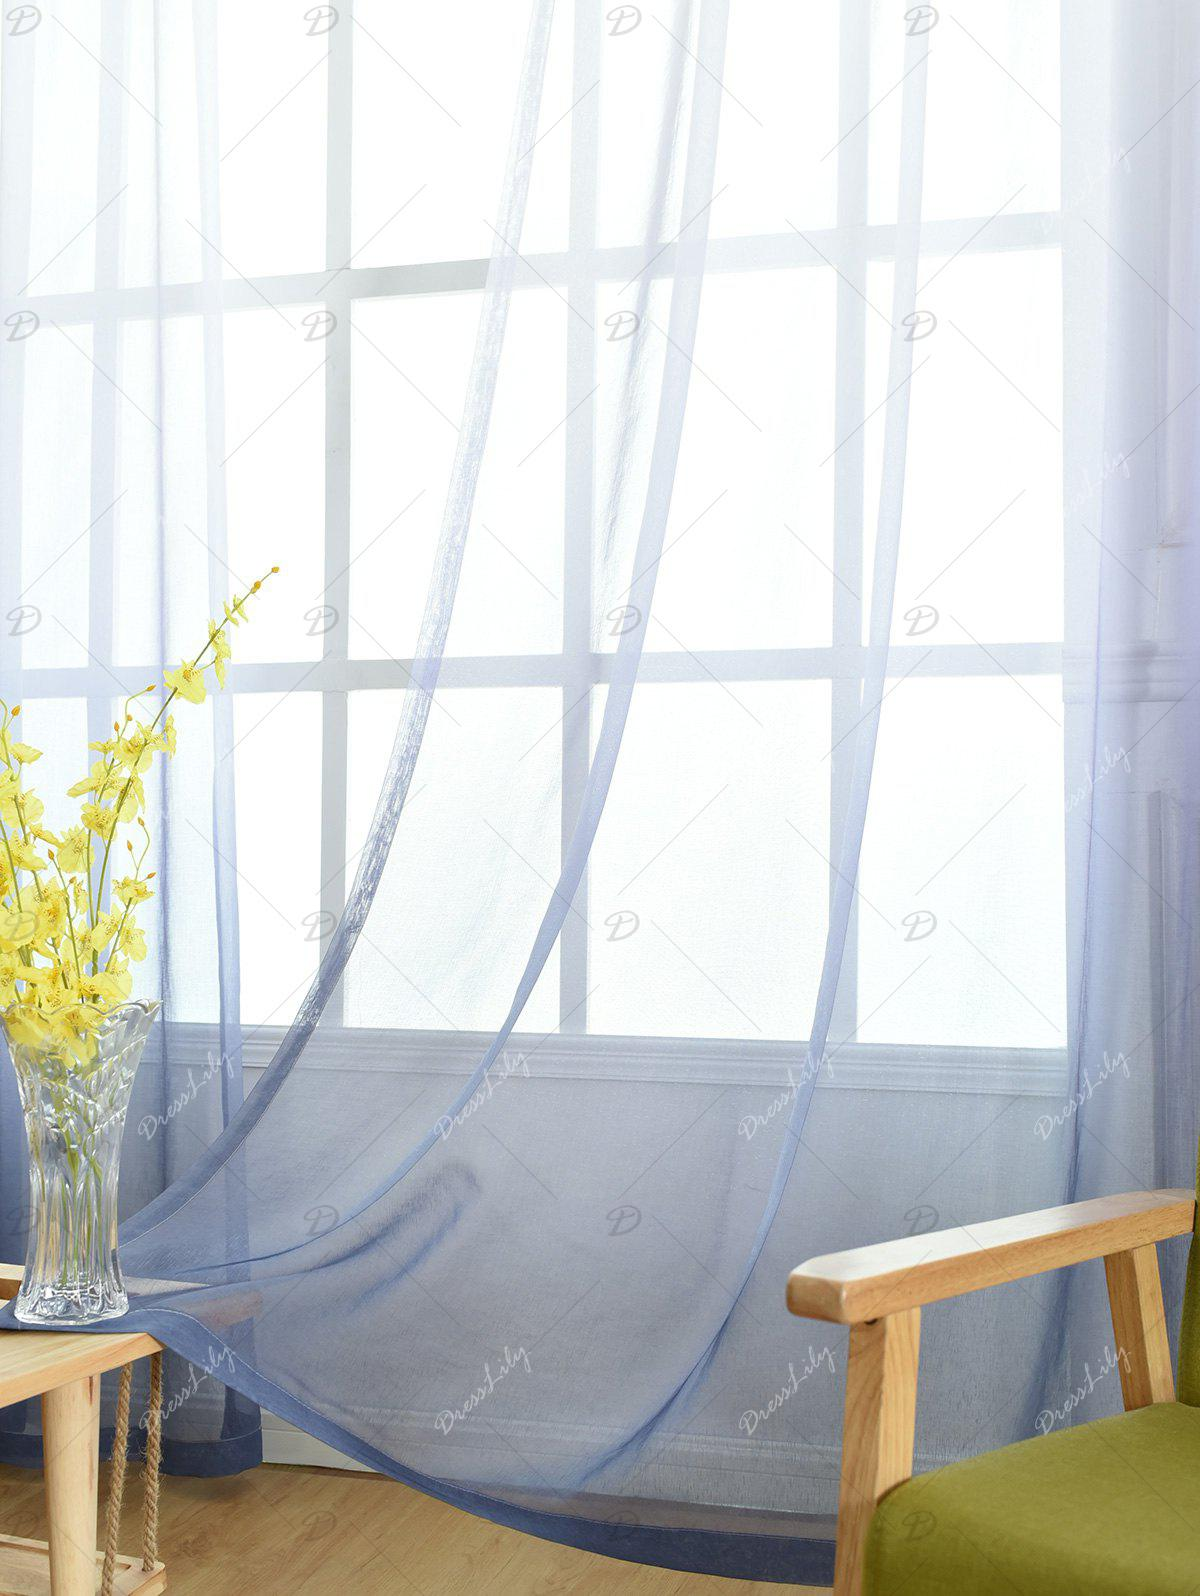 Ombre Sheer Tulle Curtain Decorative Window Screen - BLUE GRAY W54*L95INCH